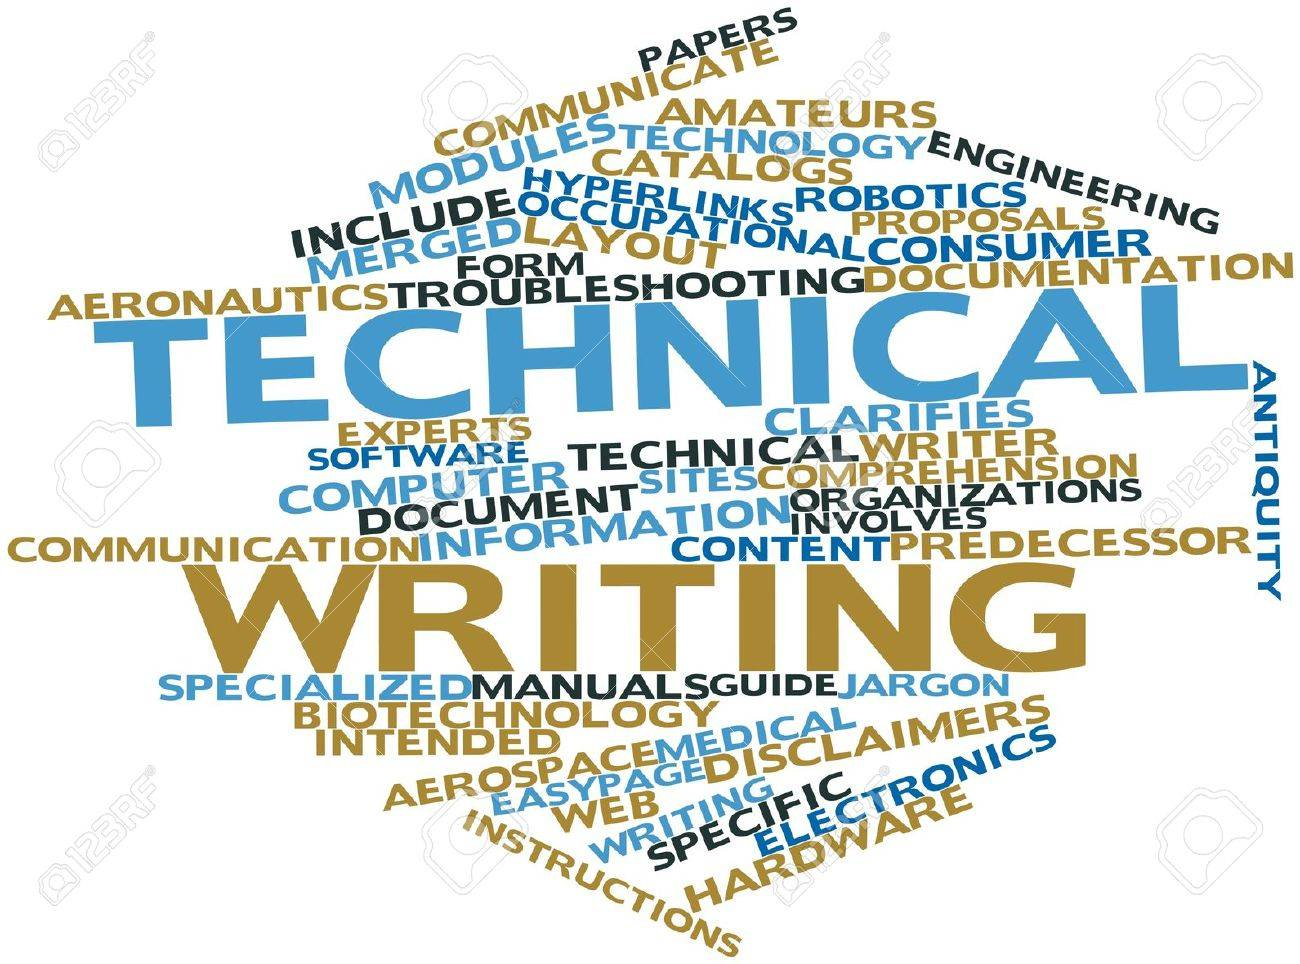 Abstract technical writing